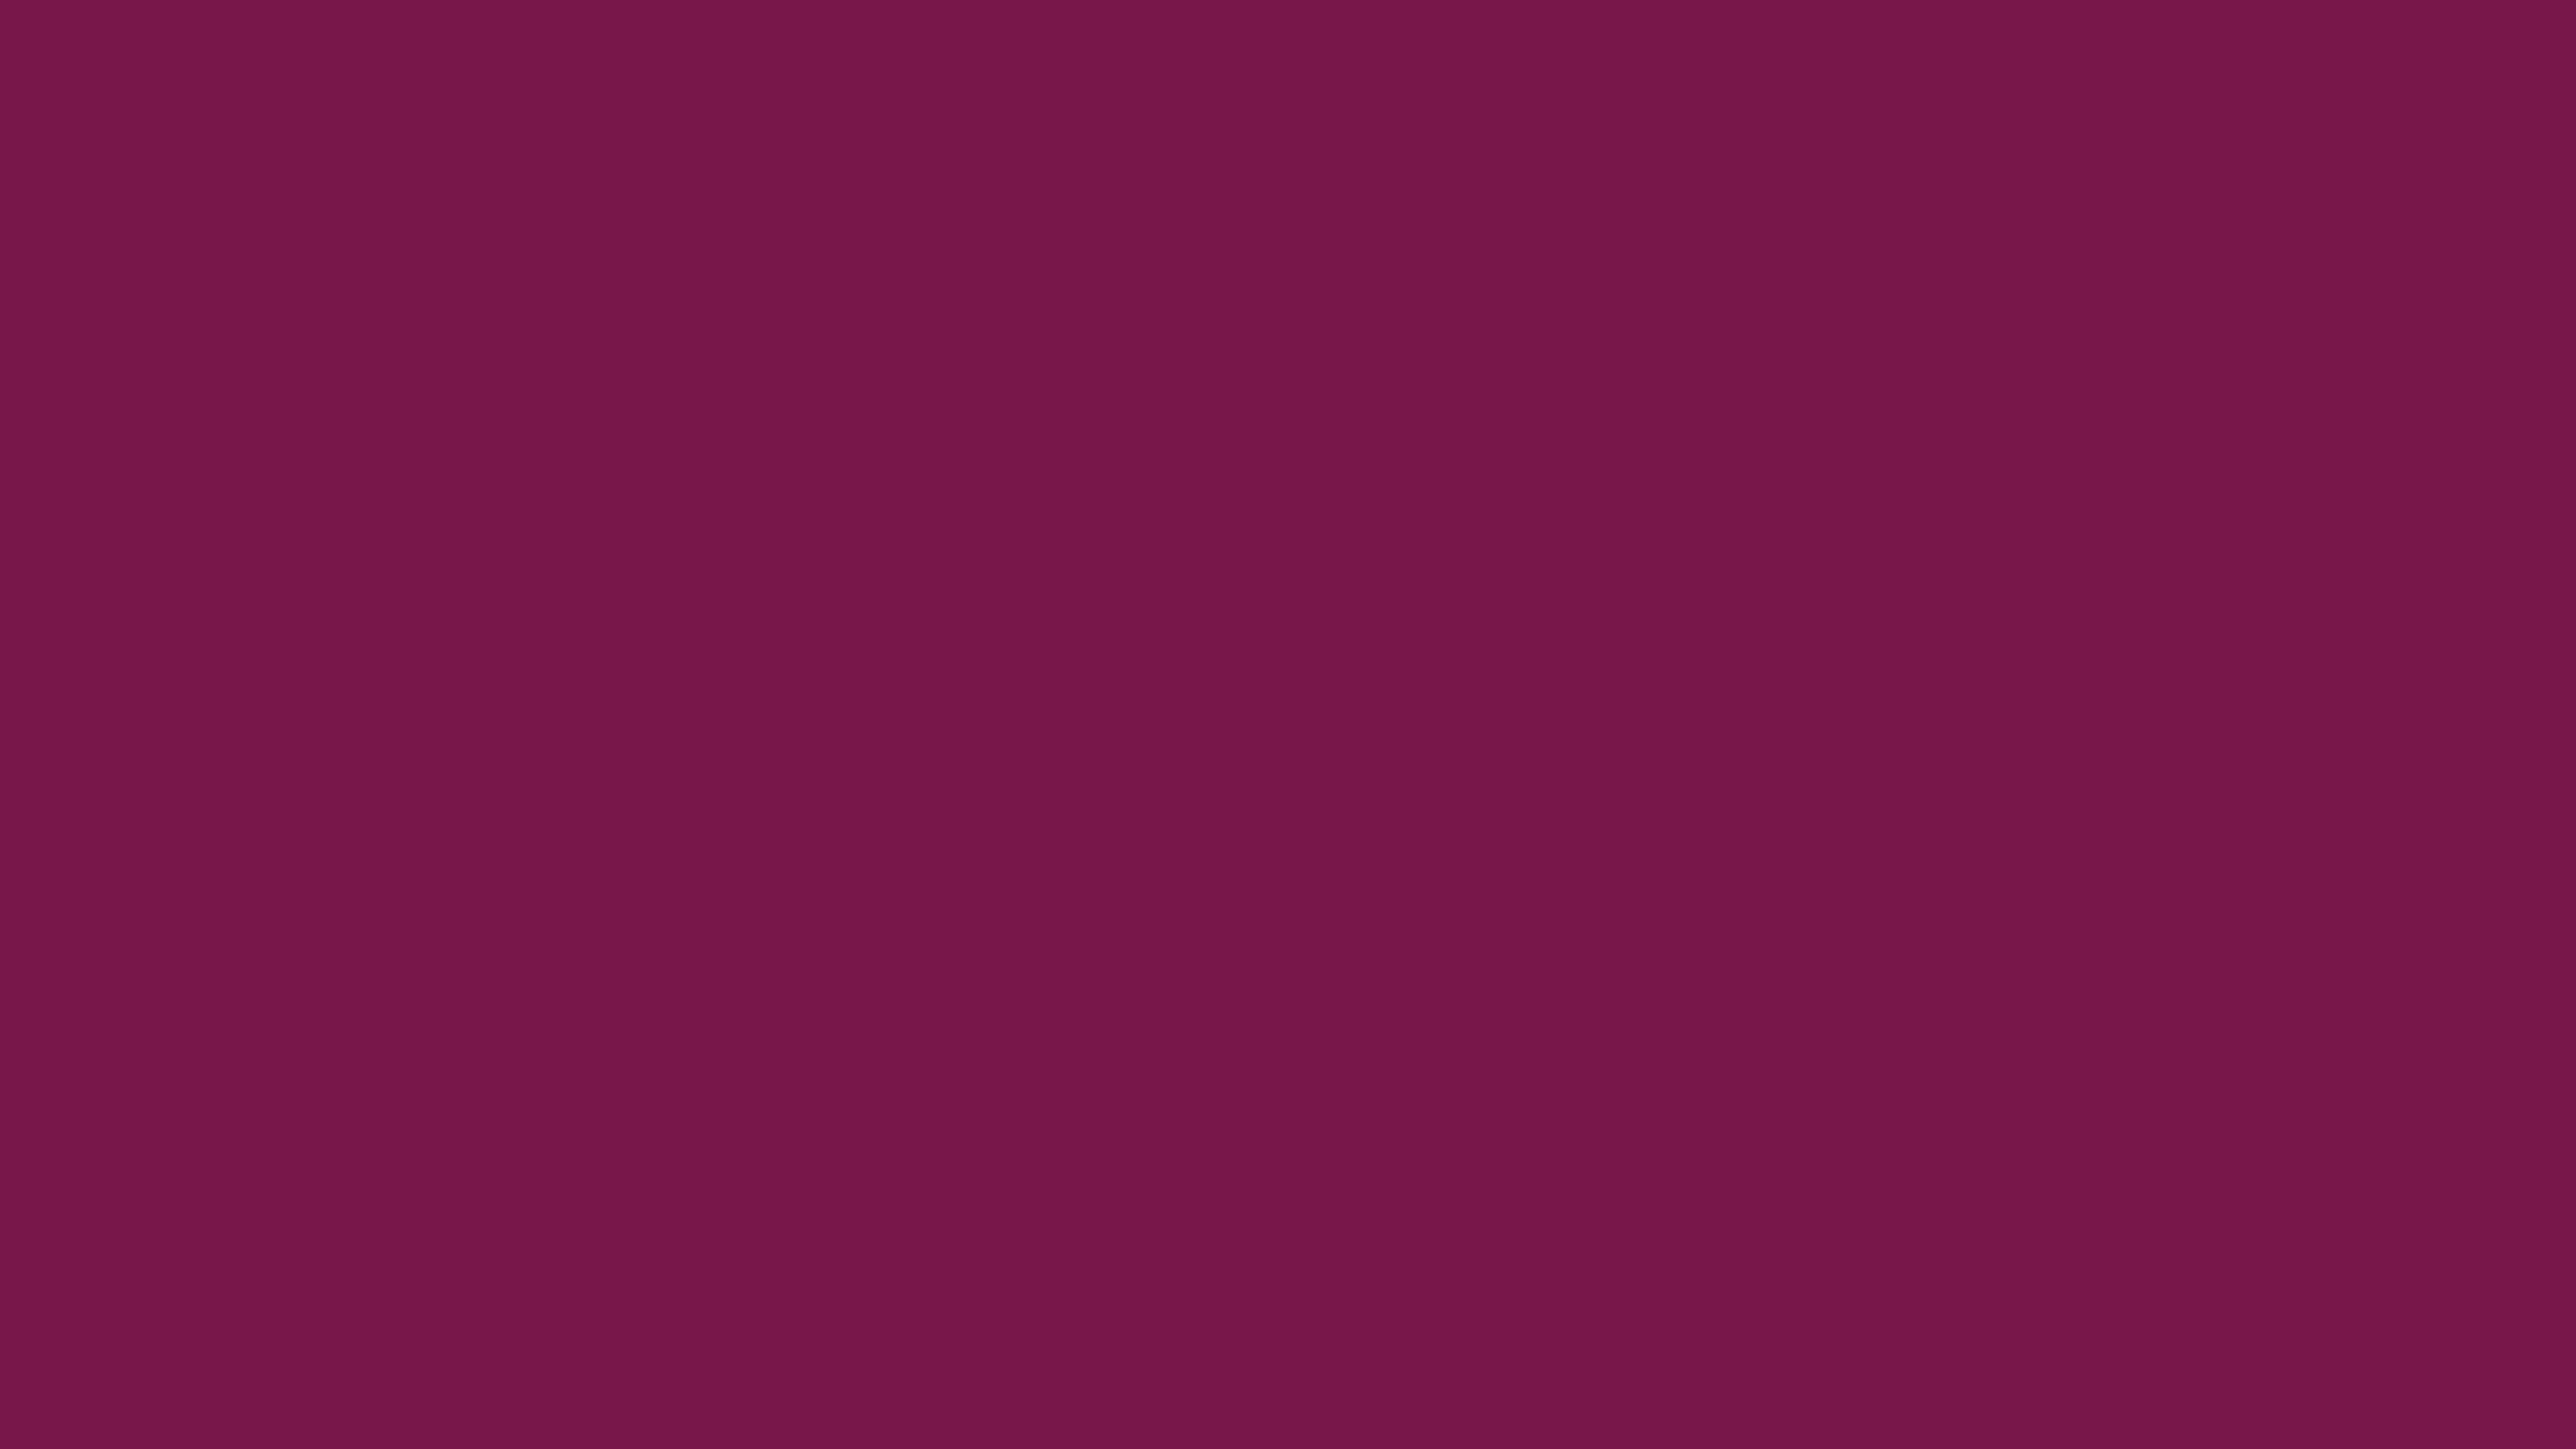 4096x2304 Pansy Purple Solid Color Background